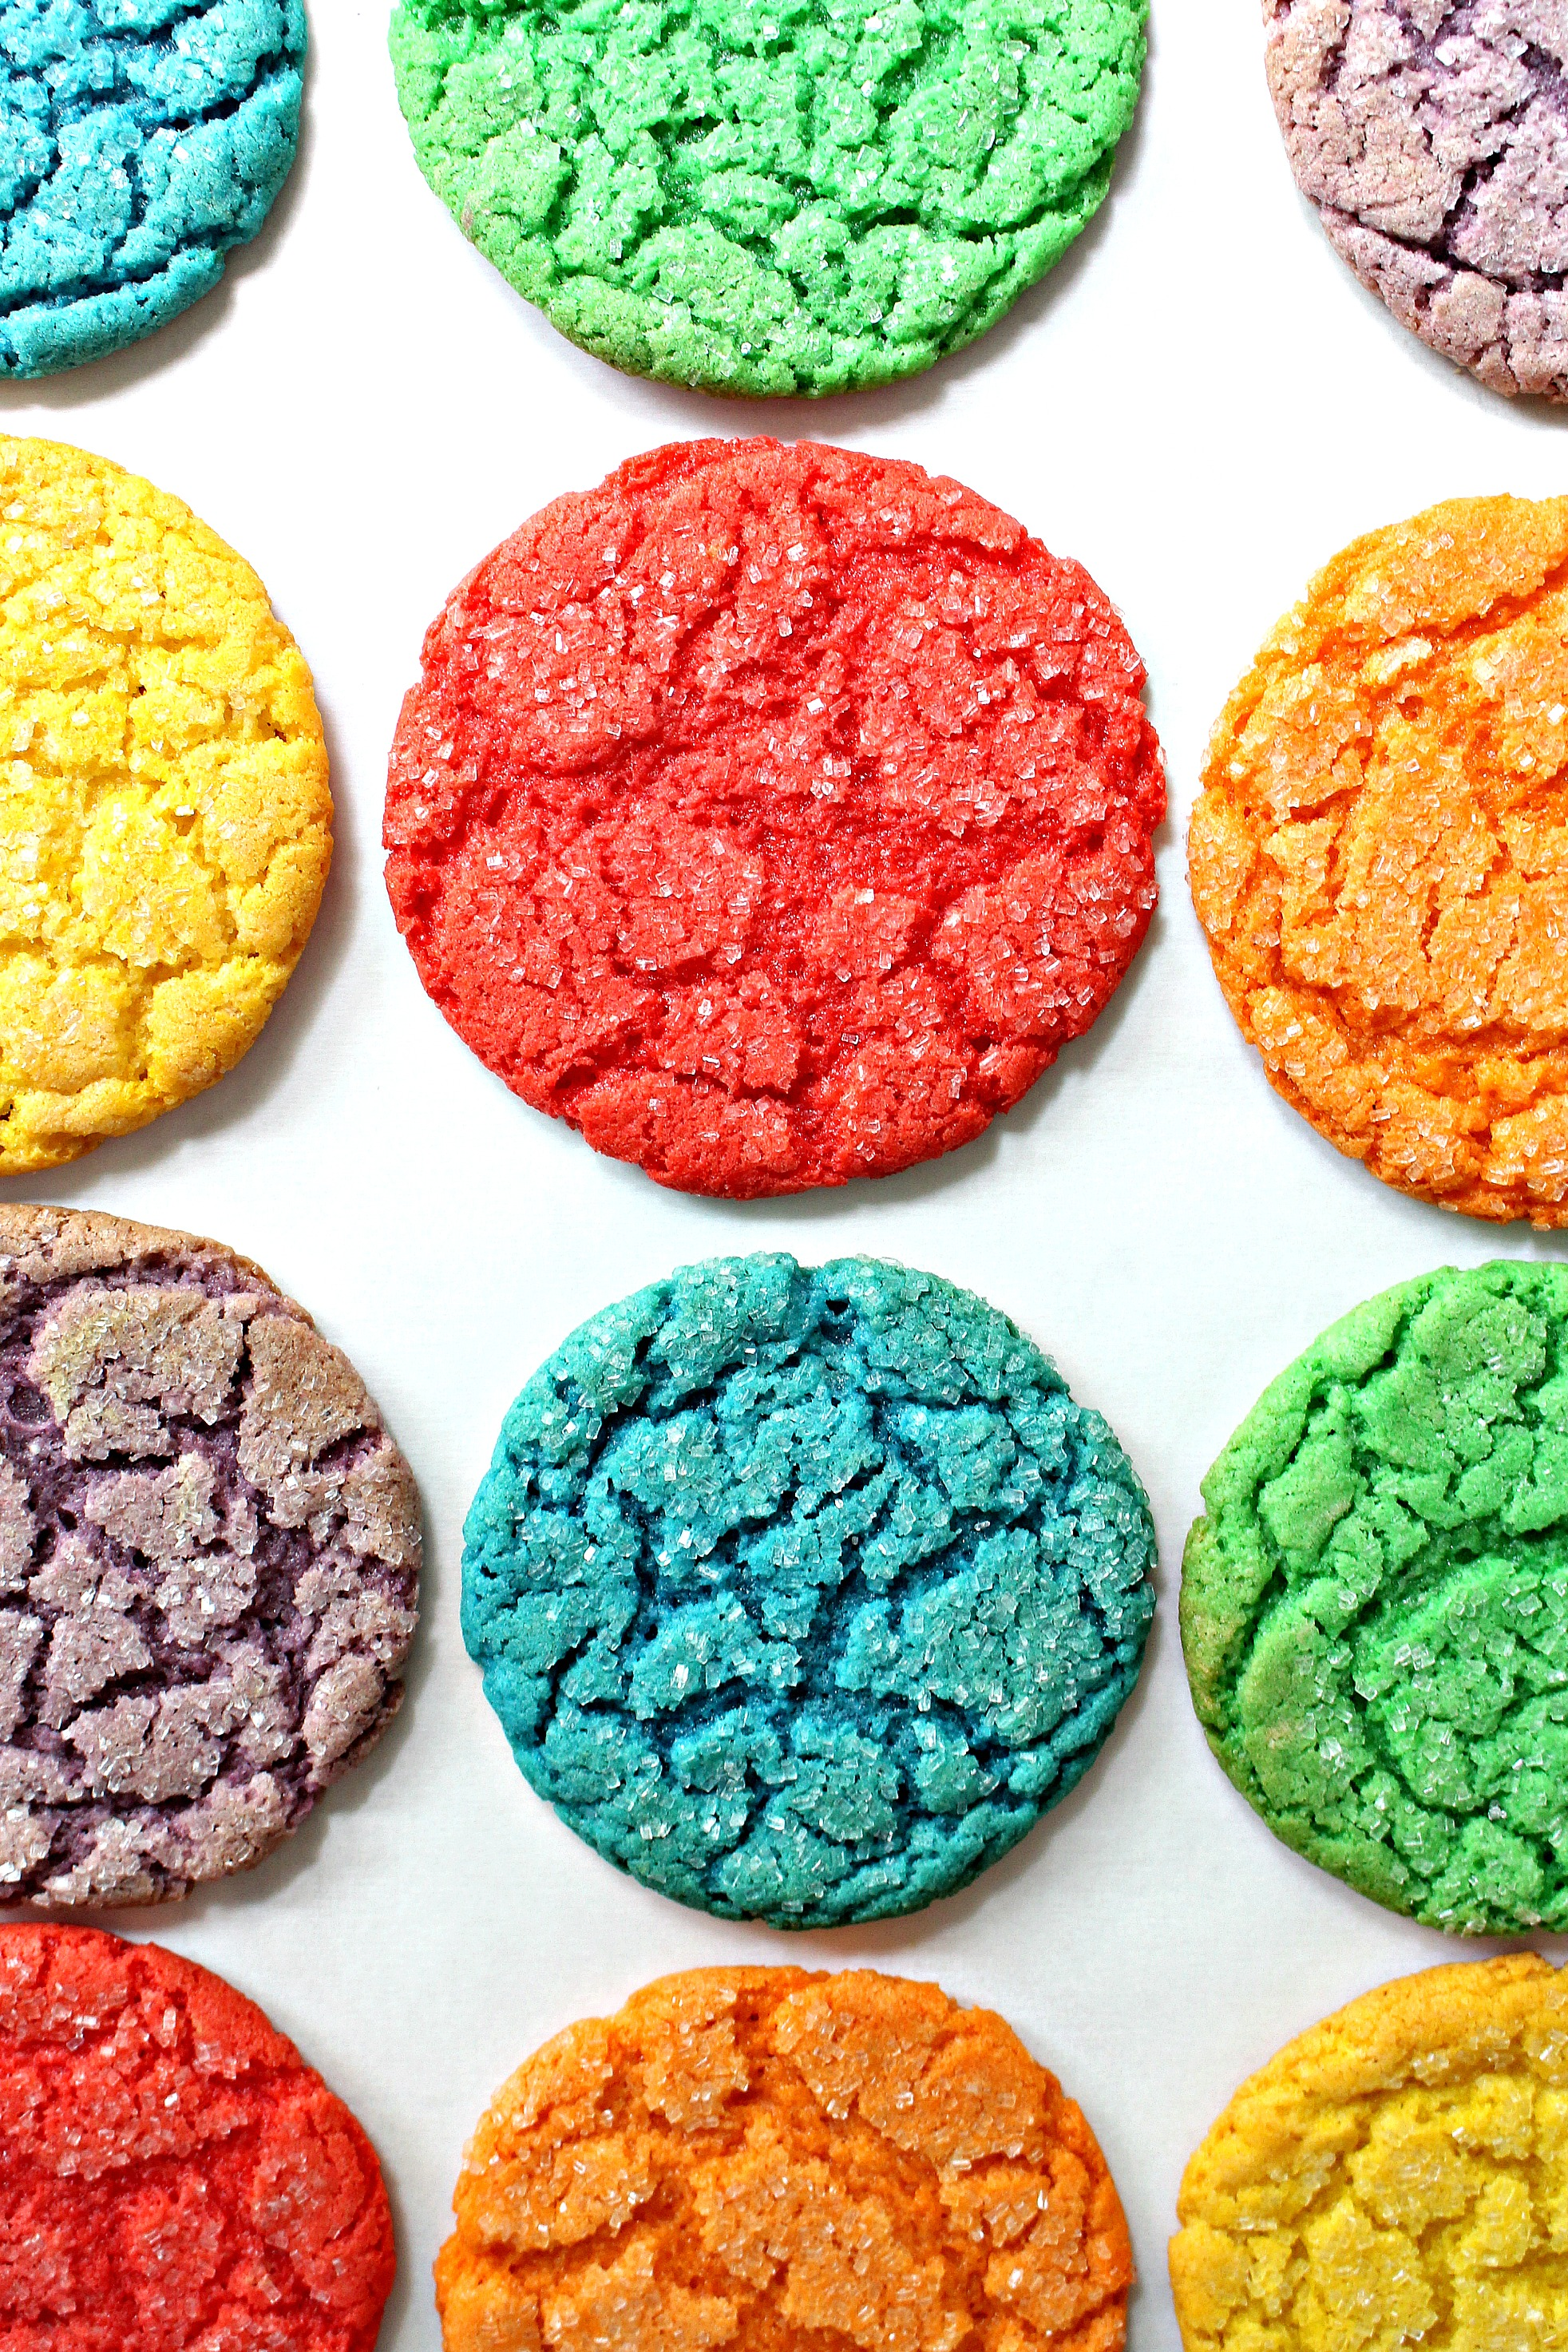 Rainbow Cake Mix Cookies for Military Care Package #23 - The Monday Box